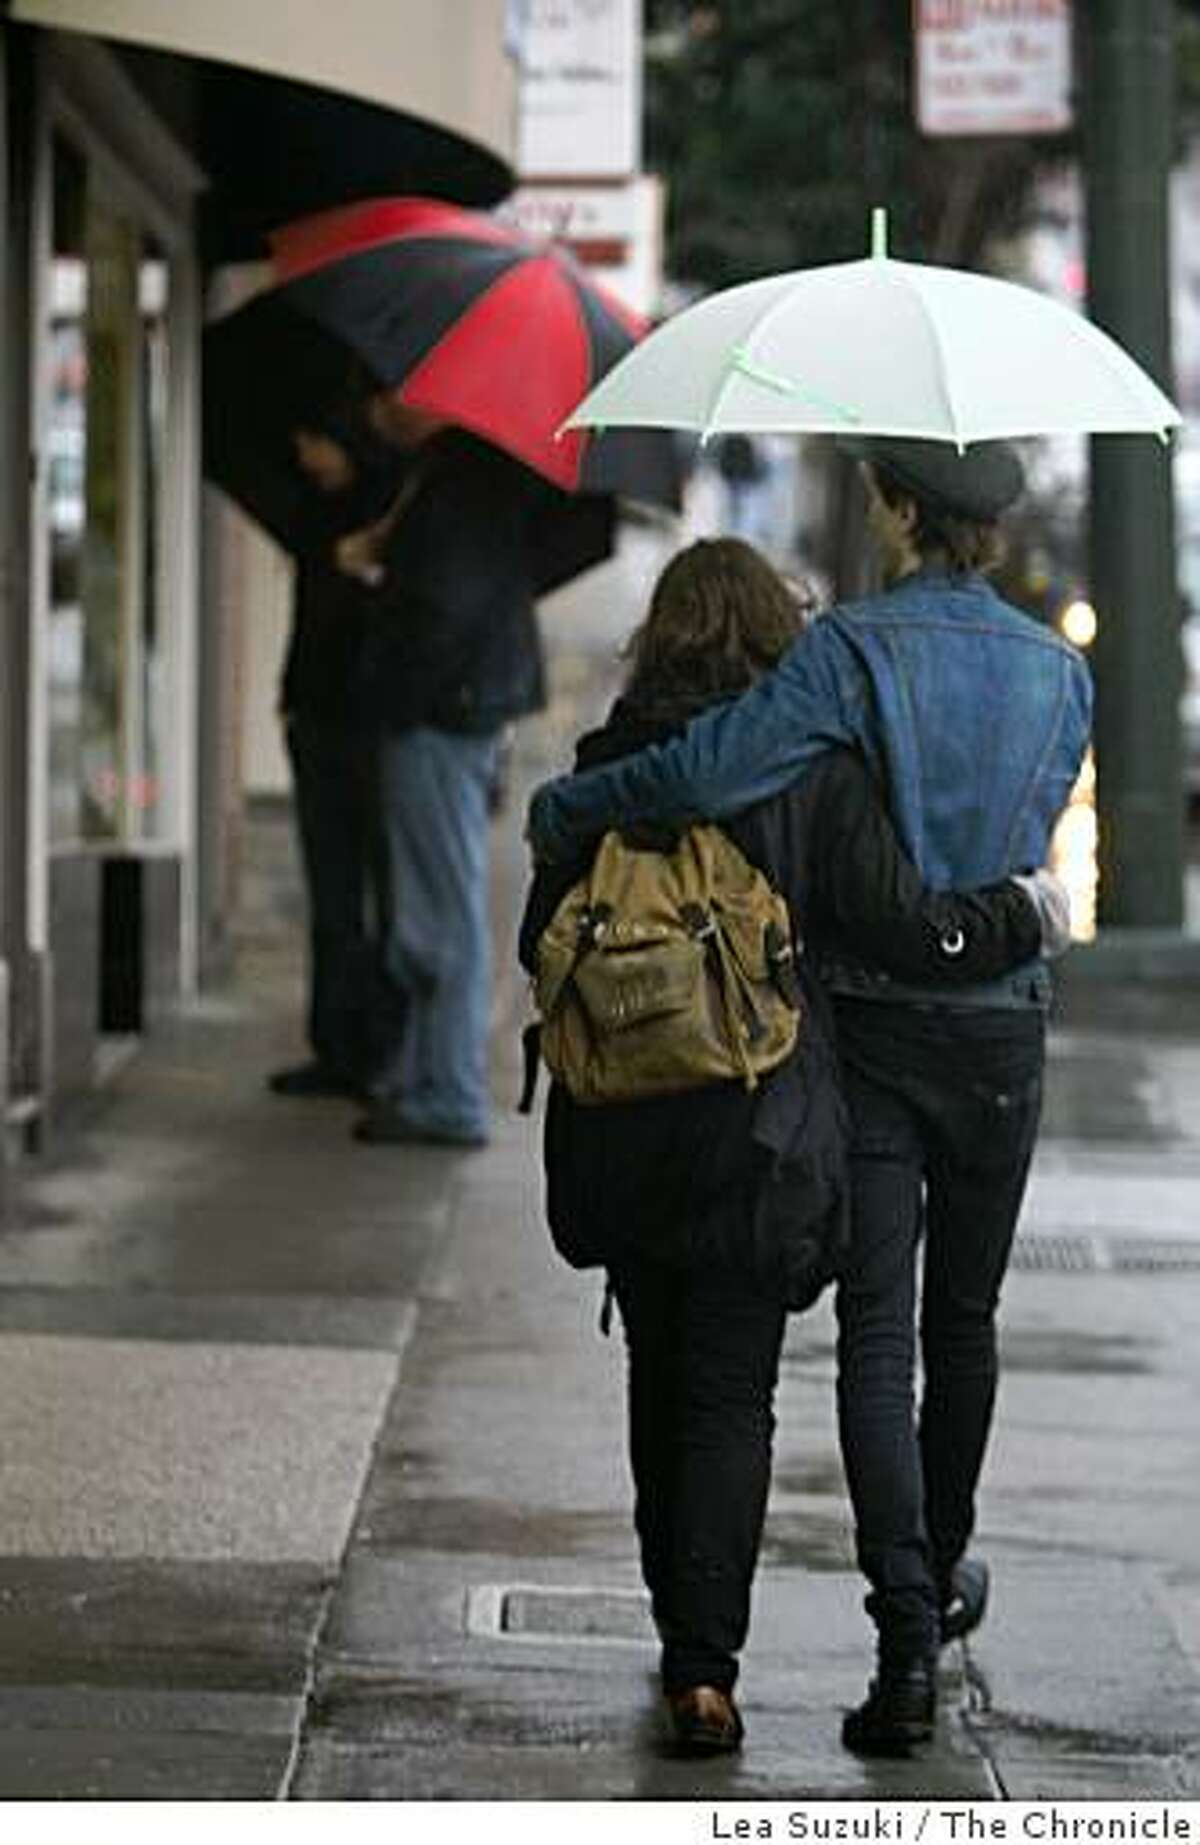 Victoria Sim ( to r) and Lynn Tolliver of Montreal, Canada share an umbrella as they walk in the rain on Castro Street in San Francisco, Calif. on Sunday, February 22, 2009.